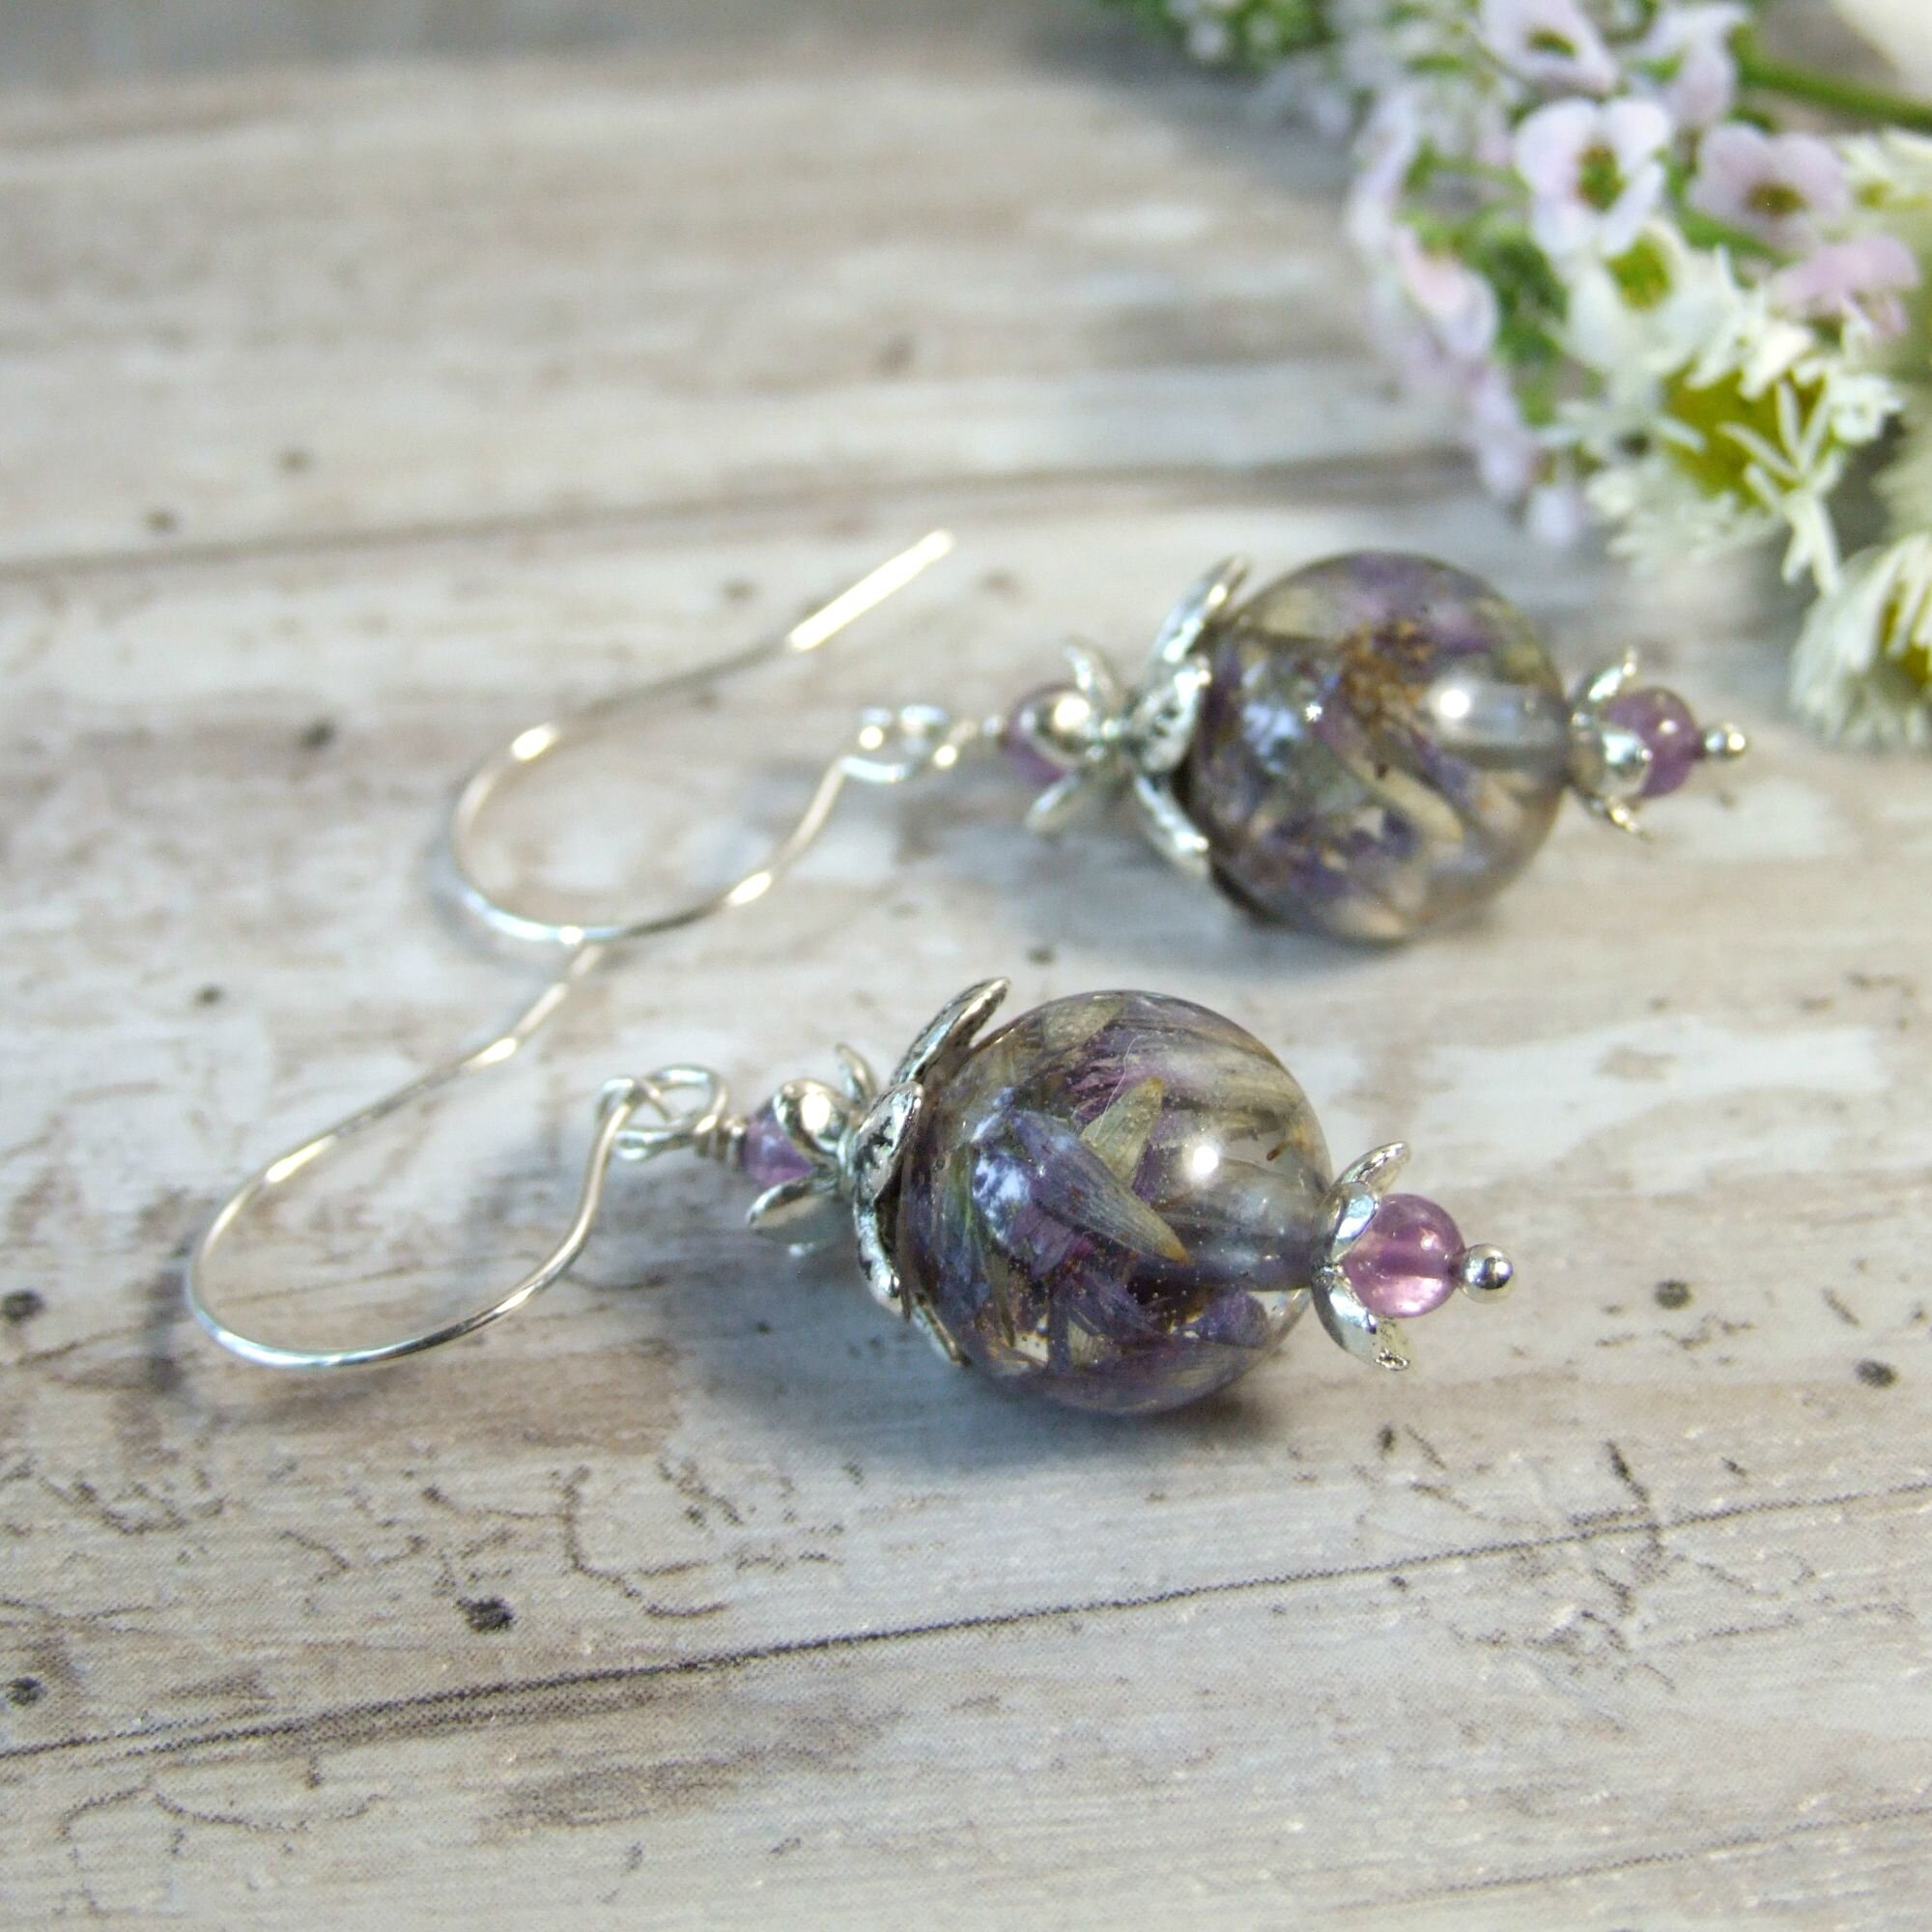 Anise Hyssop Real Purple Wildflower Dangle Earrings with Amethyst